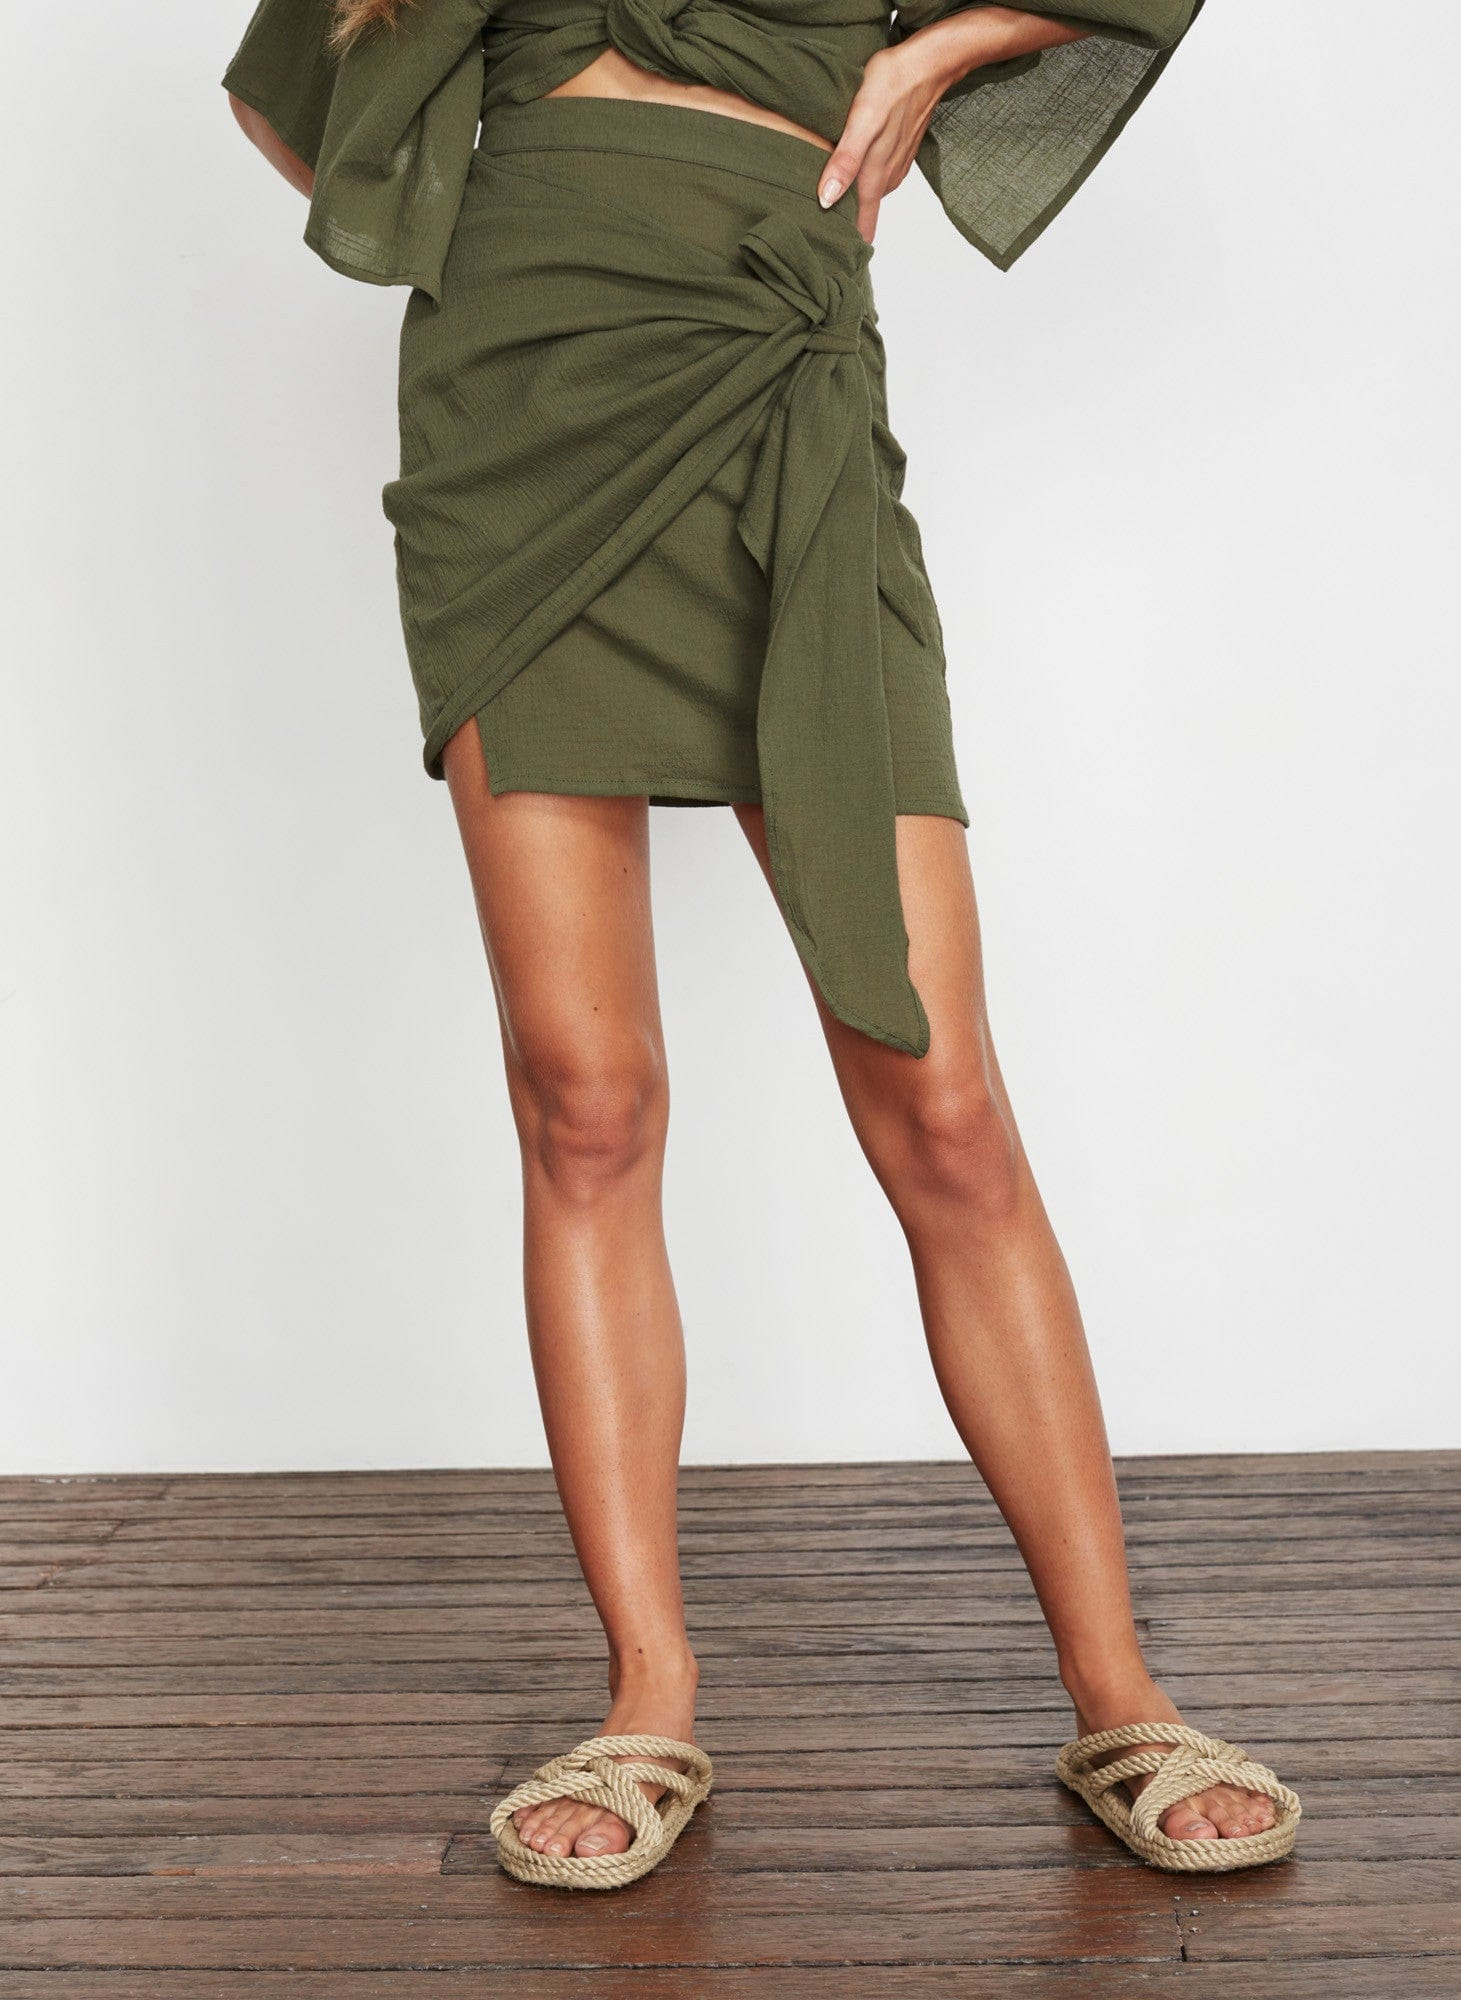 PLAIN KHAKI - ACADIA SKIRT